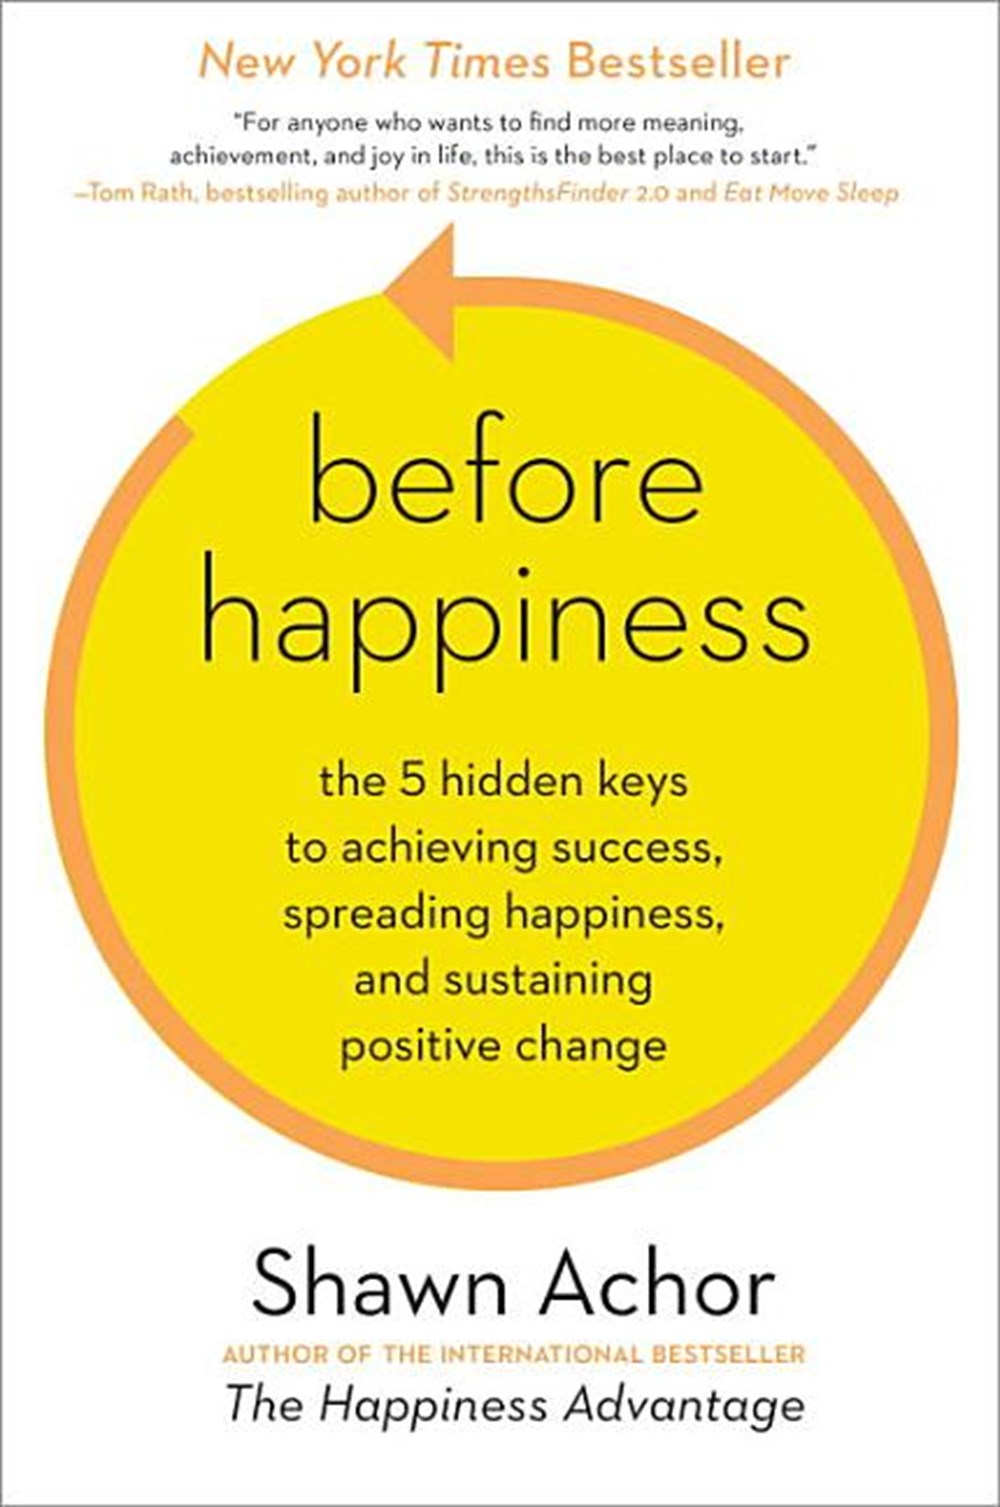 Before Happiness The 5 Hidden Keys to Achieving Success, Spreading Happiness, and Sustaining Positiv